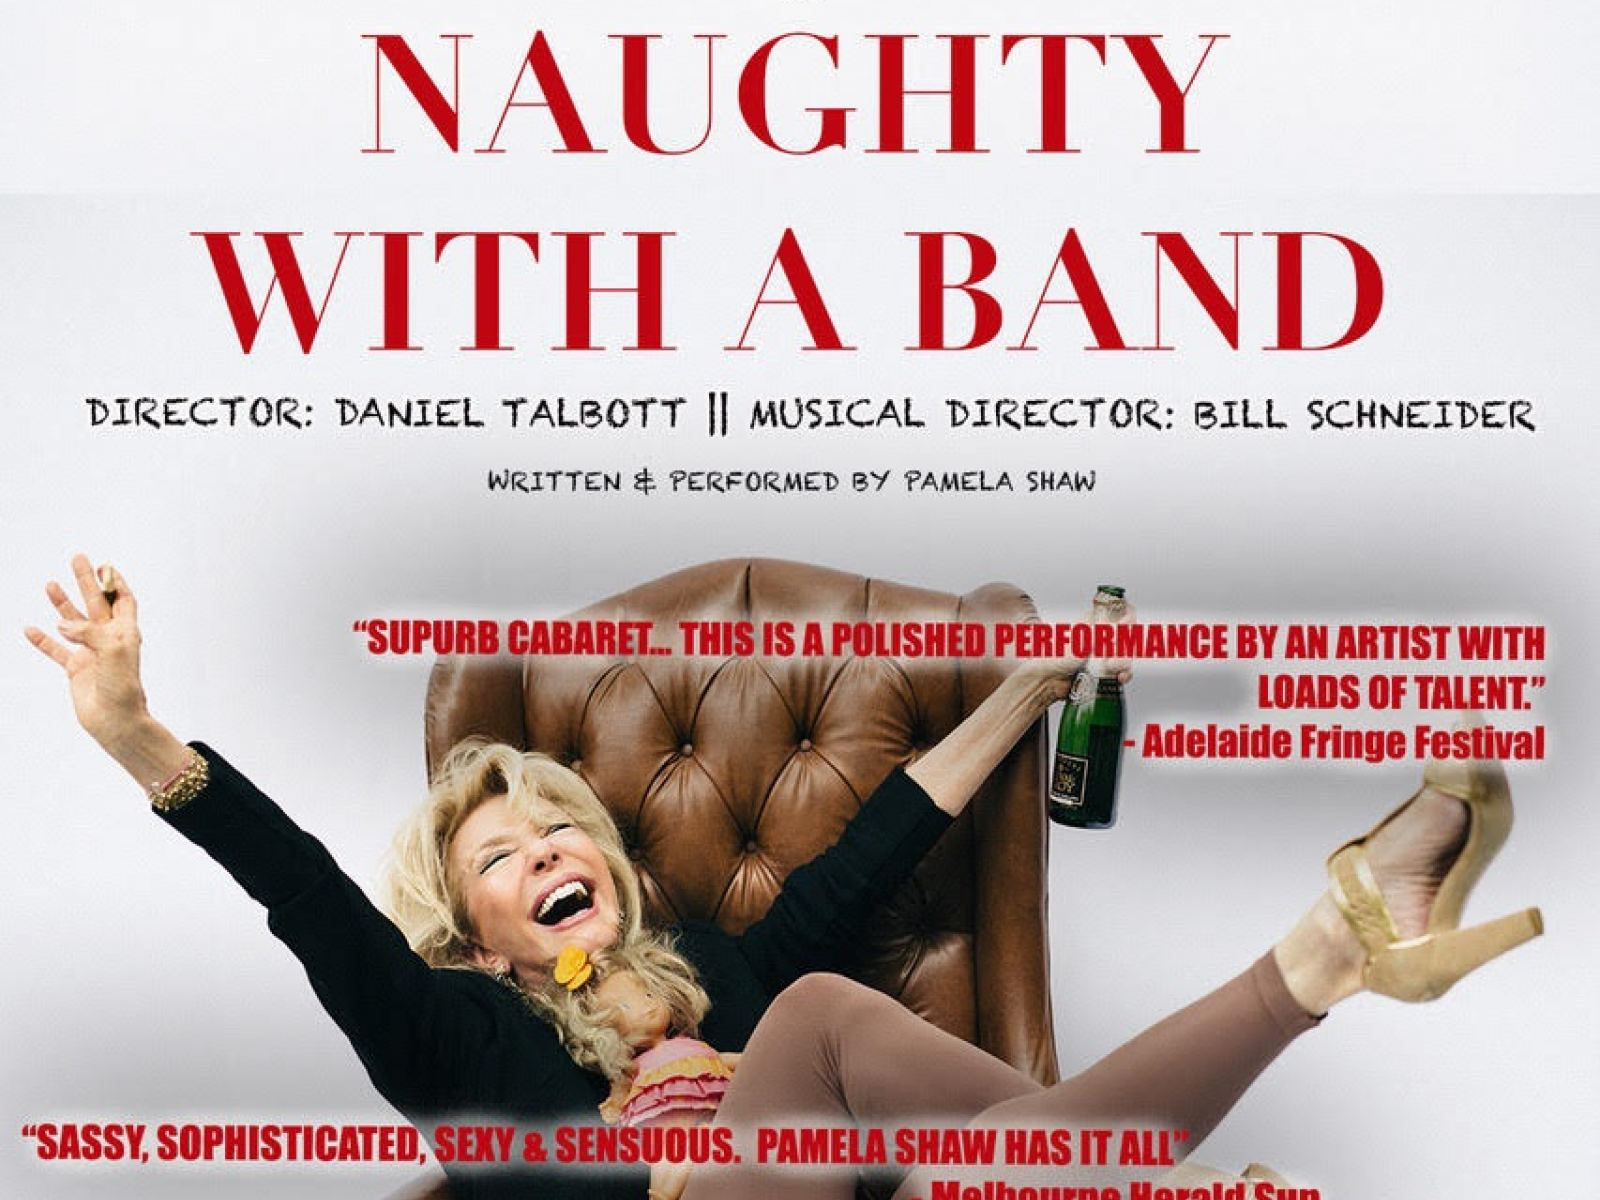 Naughty with a Band